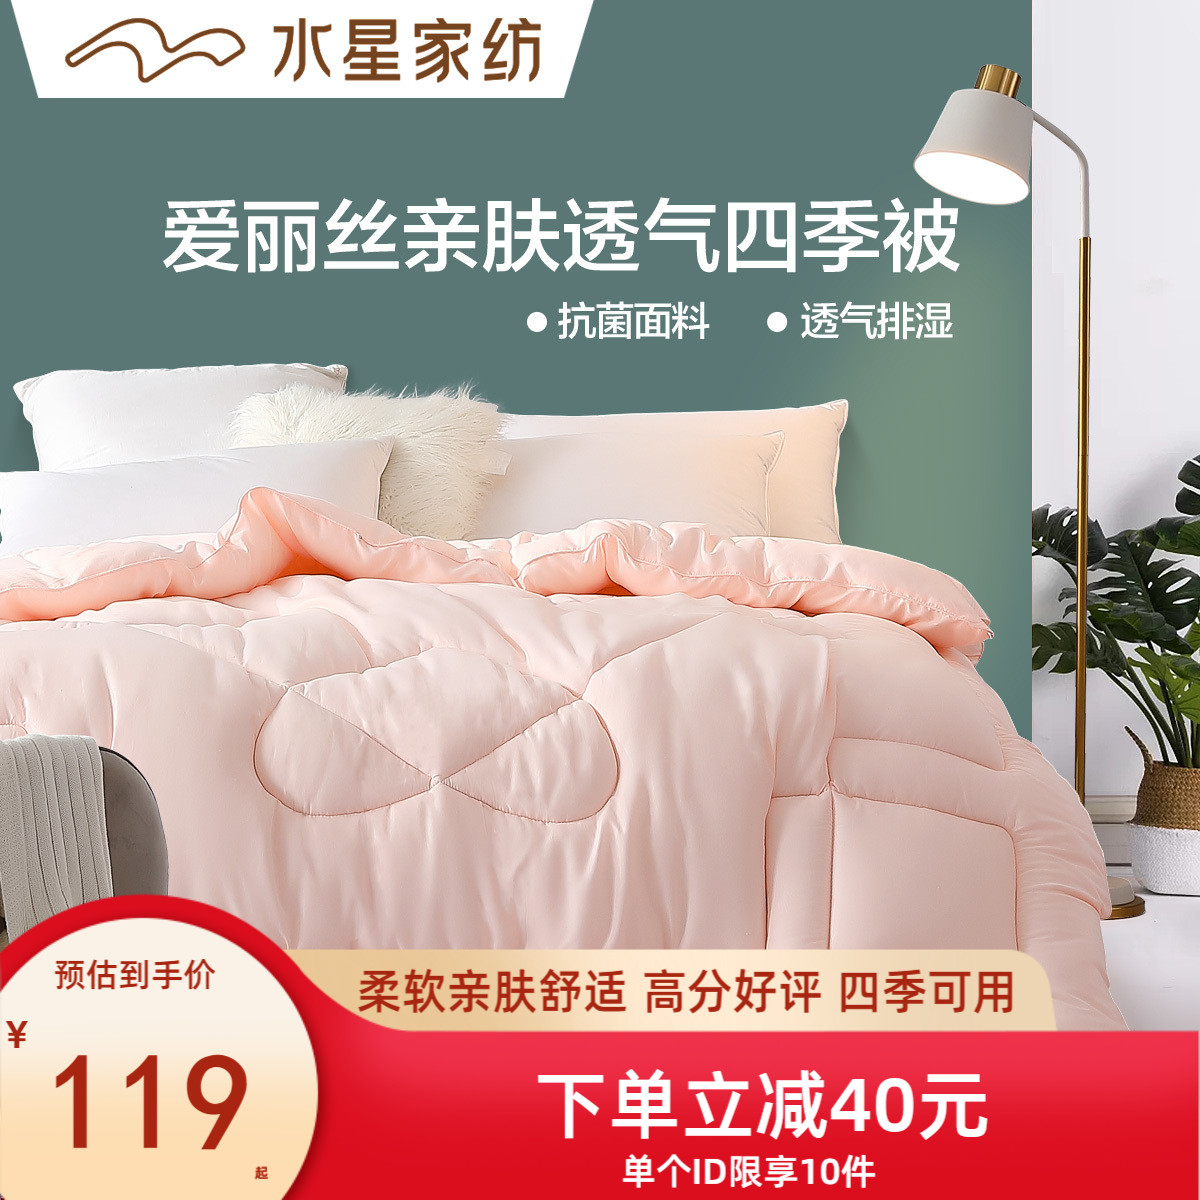 Mercury home textile quilt spring and autumn single double air conditioning quilt summer cool quilt student dormitory summer quilt core all year round